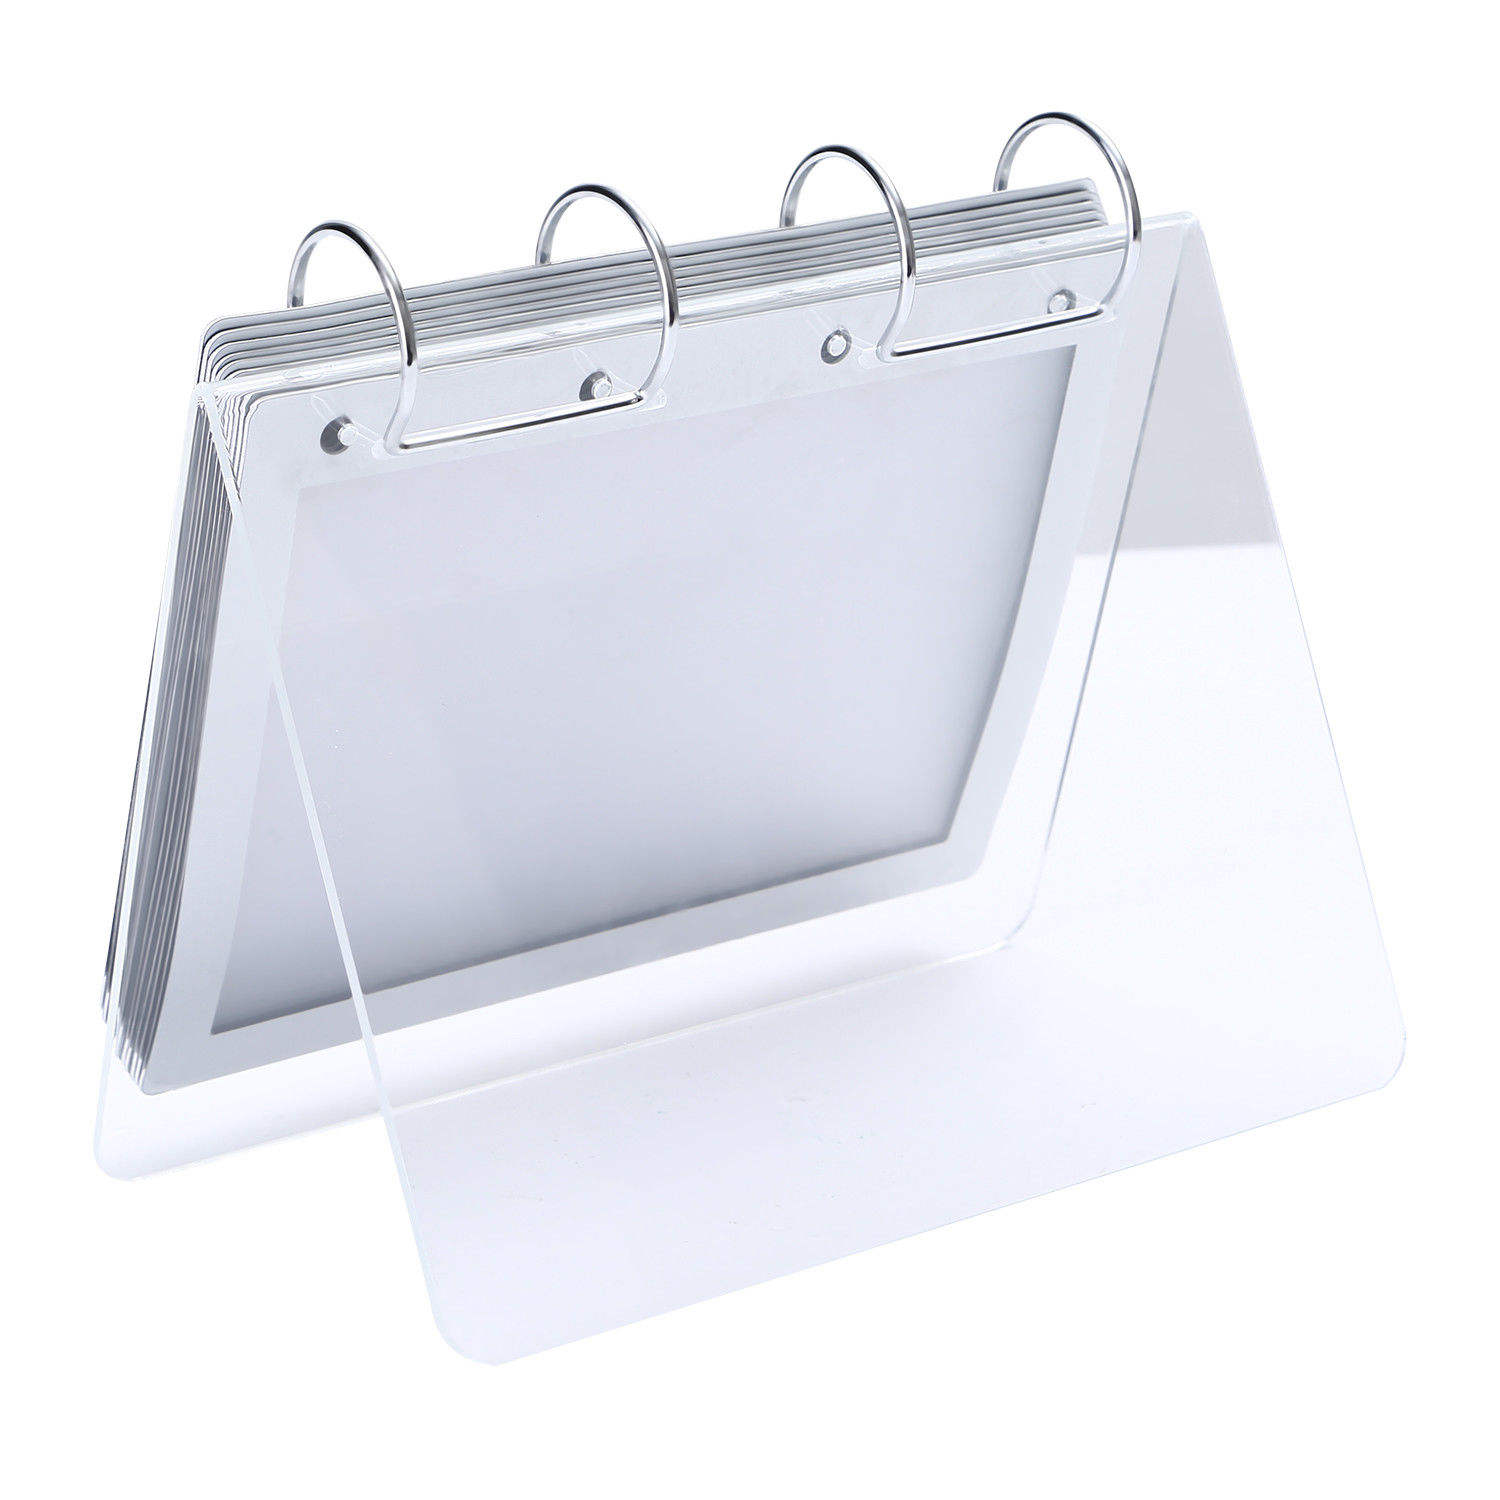 Desk Top 5x7 Inches Acrylic Calendar Holder with PVC Sleeve